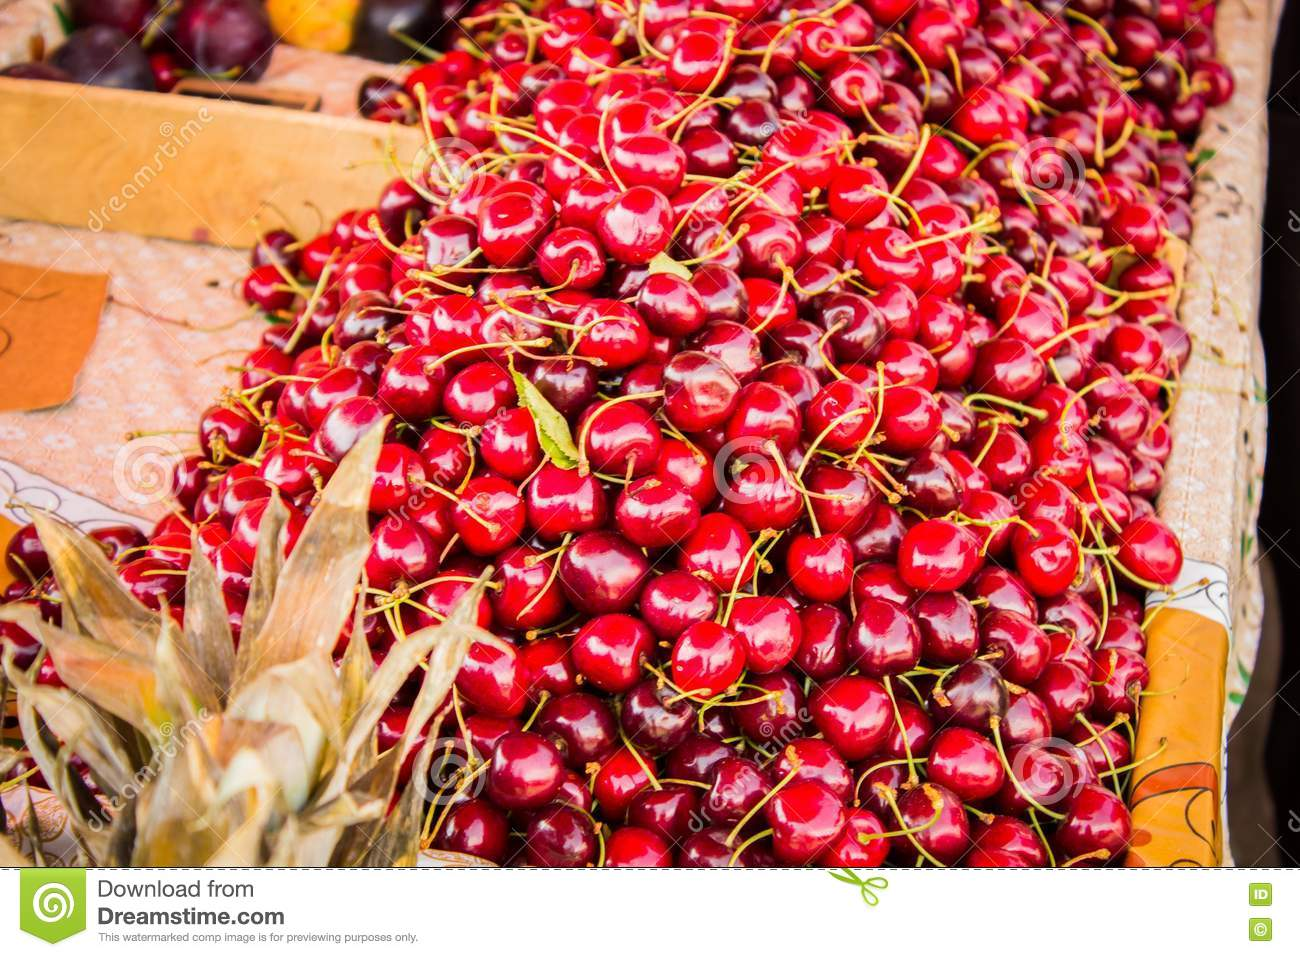 Sweet cherries at the counter